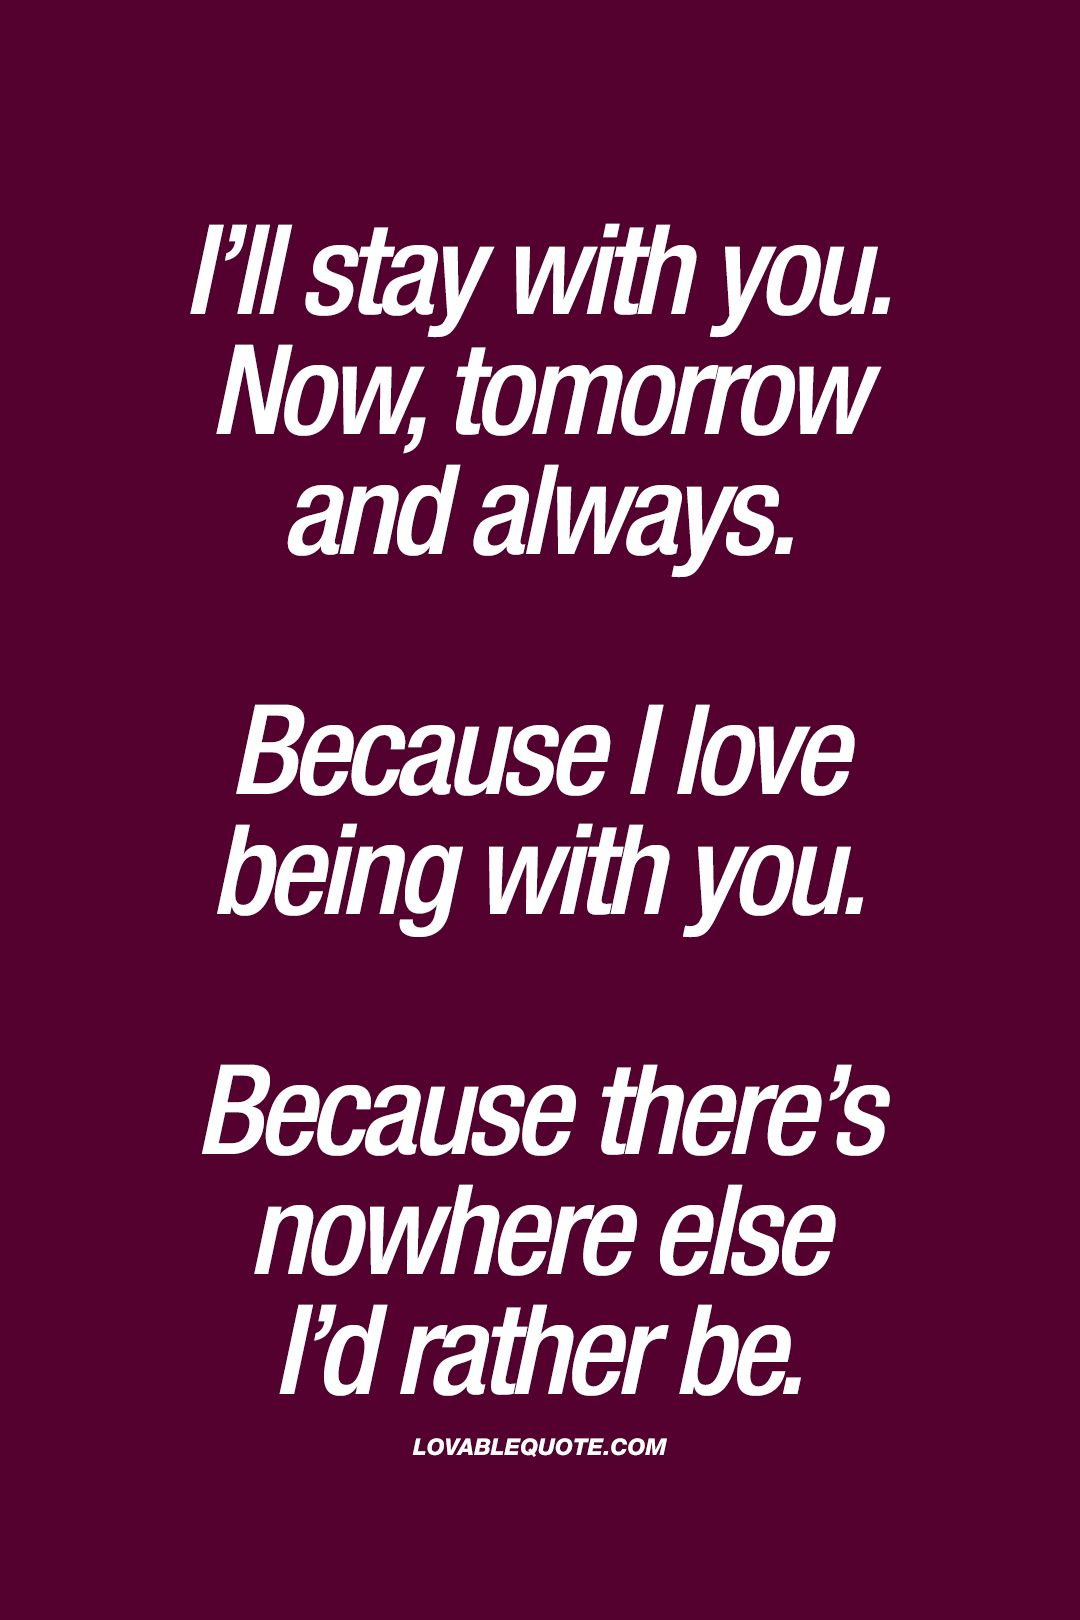 I Ll Stay With You Now Tomorrow And Always Because I Love Being With You Because There S Nowhere Else I D Rather Be Love Yourself Quotes Love Quotes Words